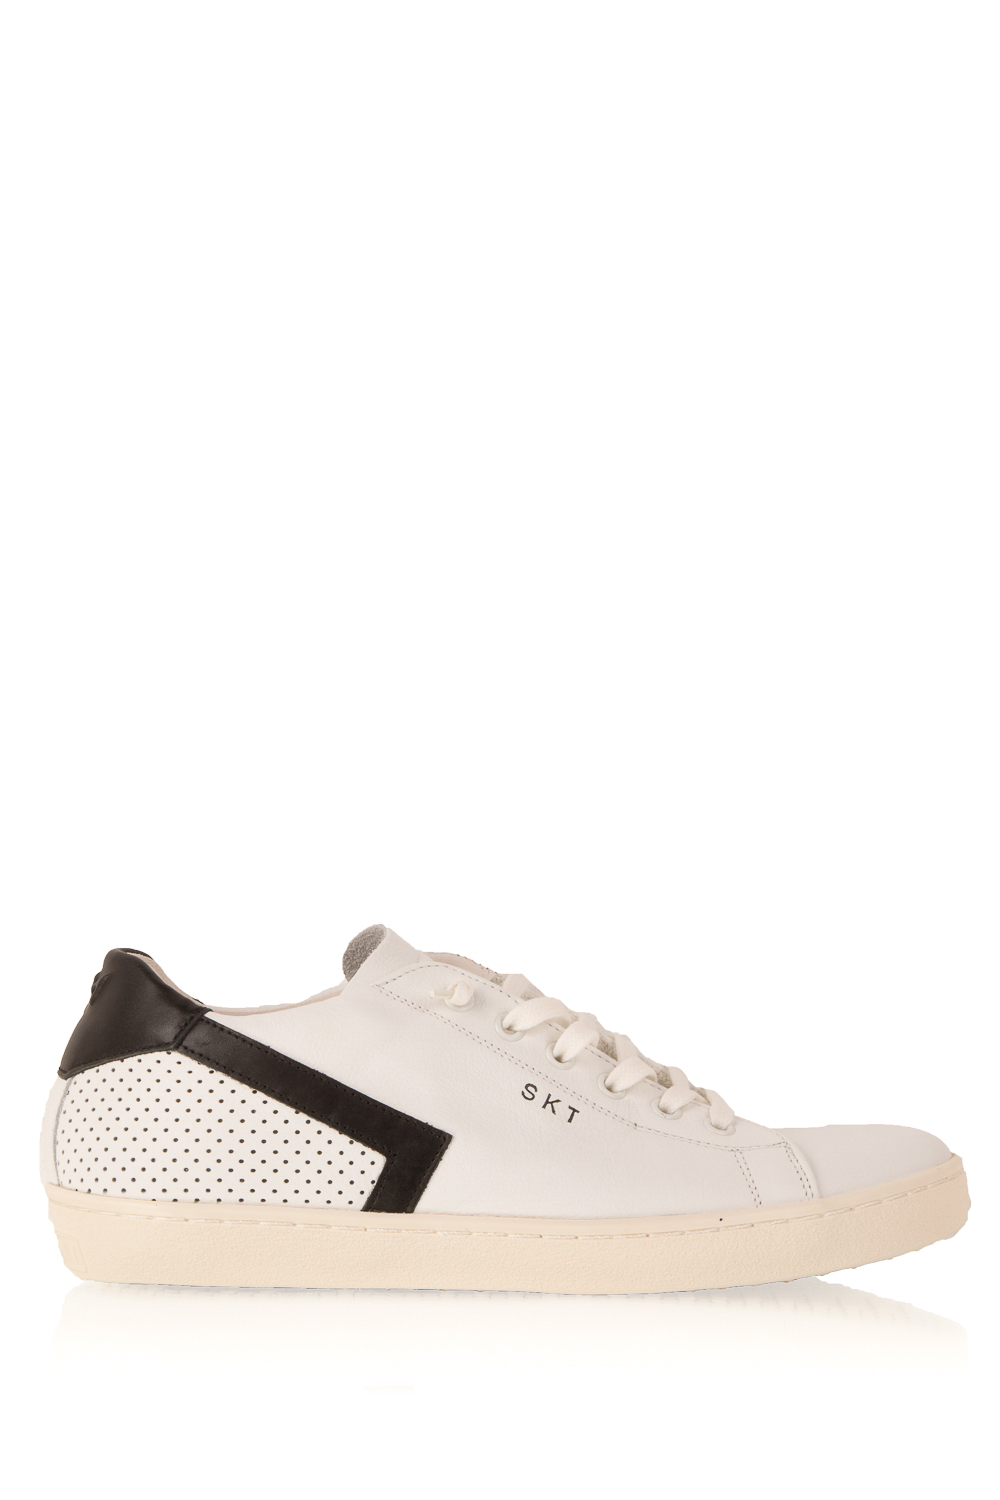 Chaussures En Cuir Couronne Blanche MKrWi845zD